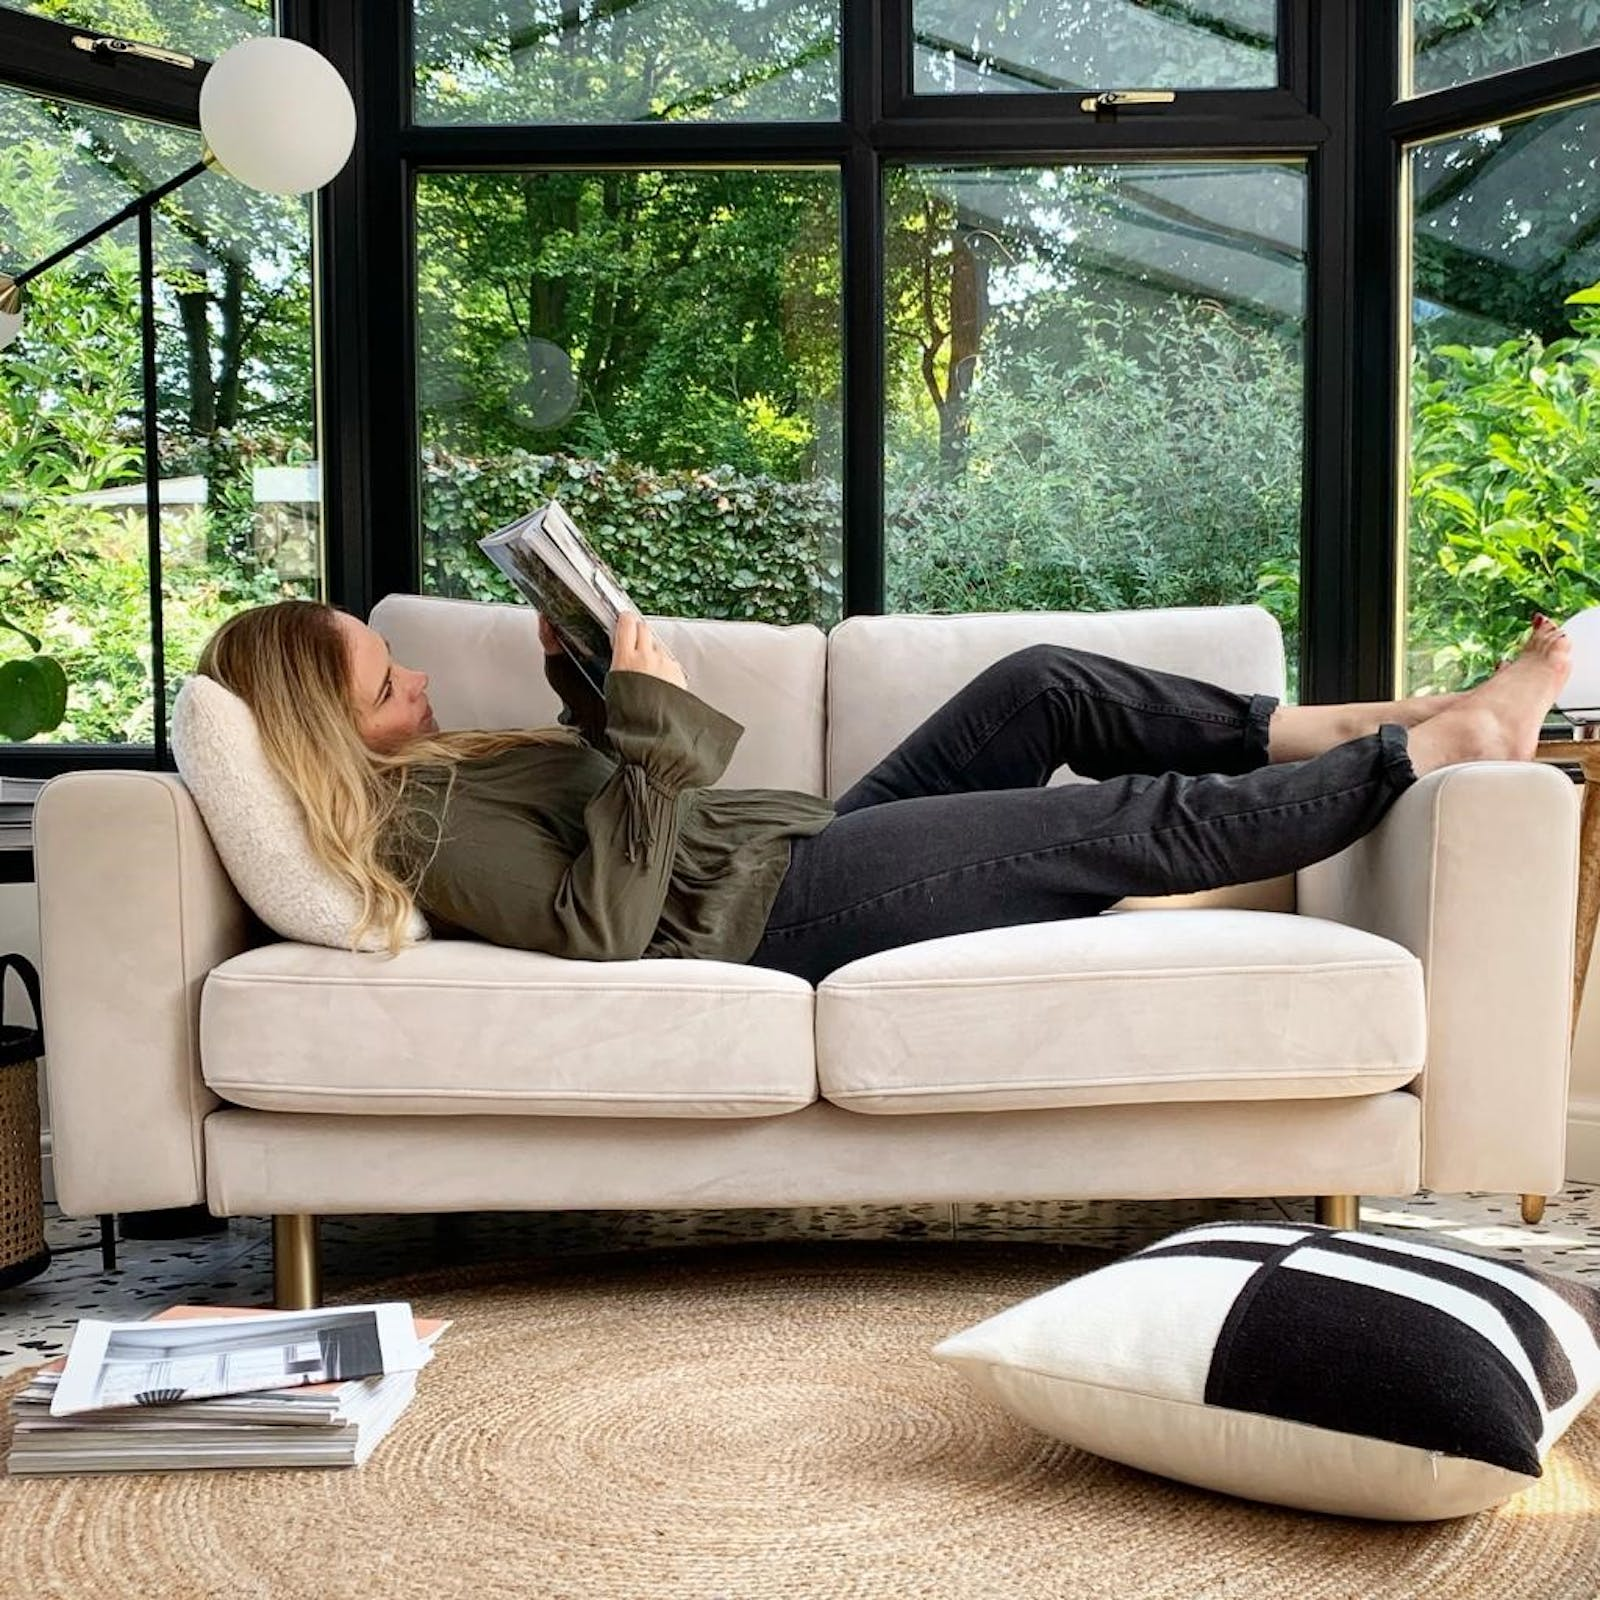 Woman reading a magazine whilst lying on a sofa